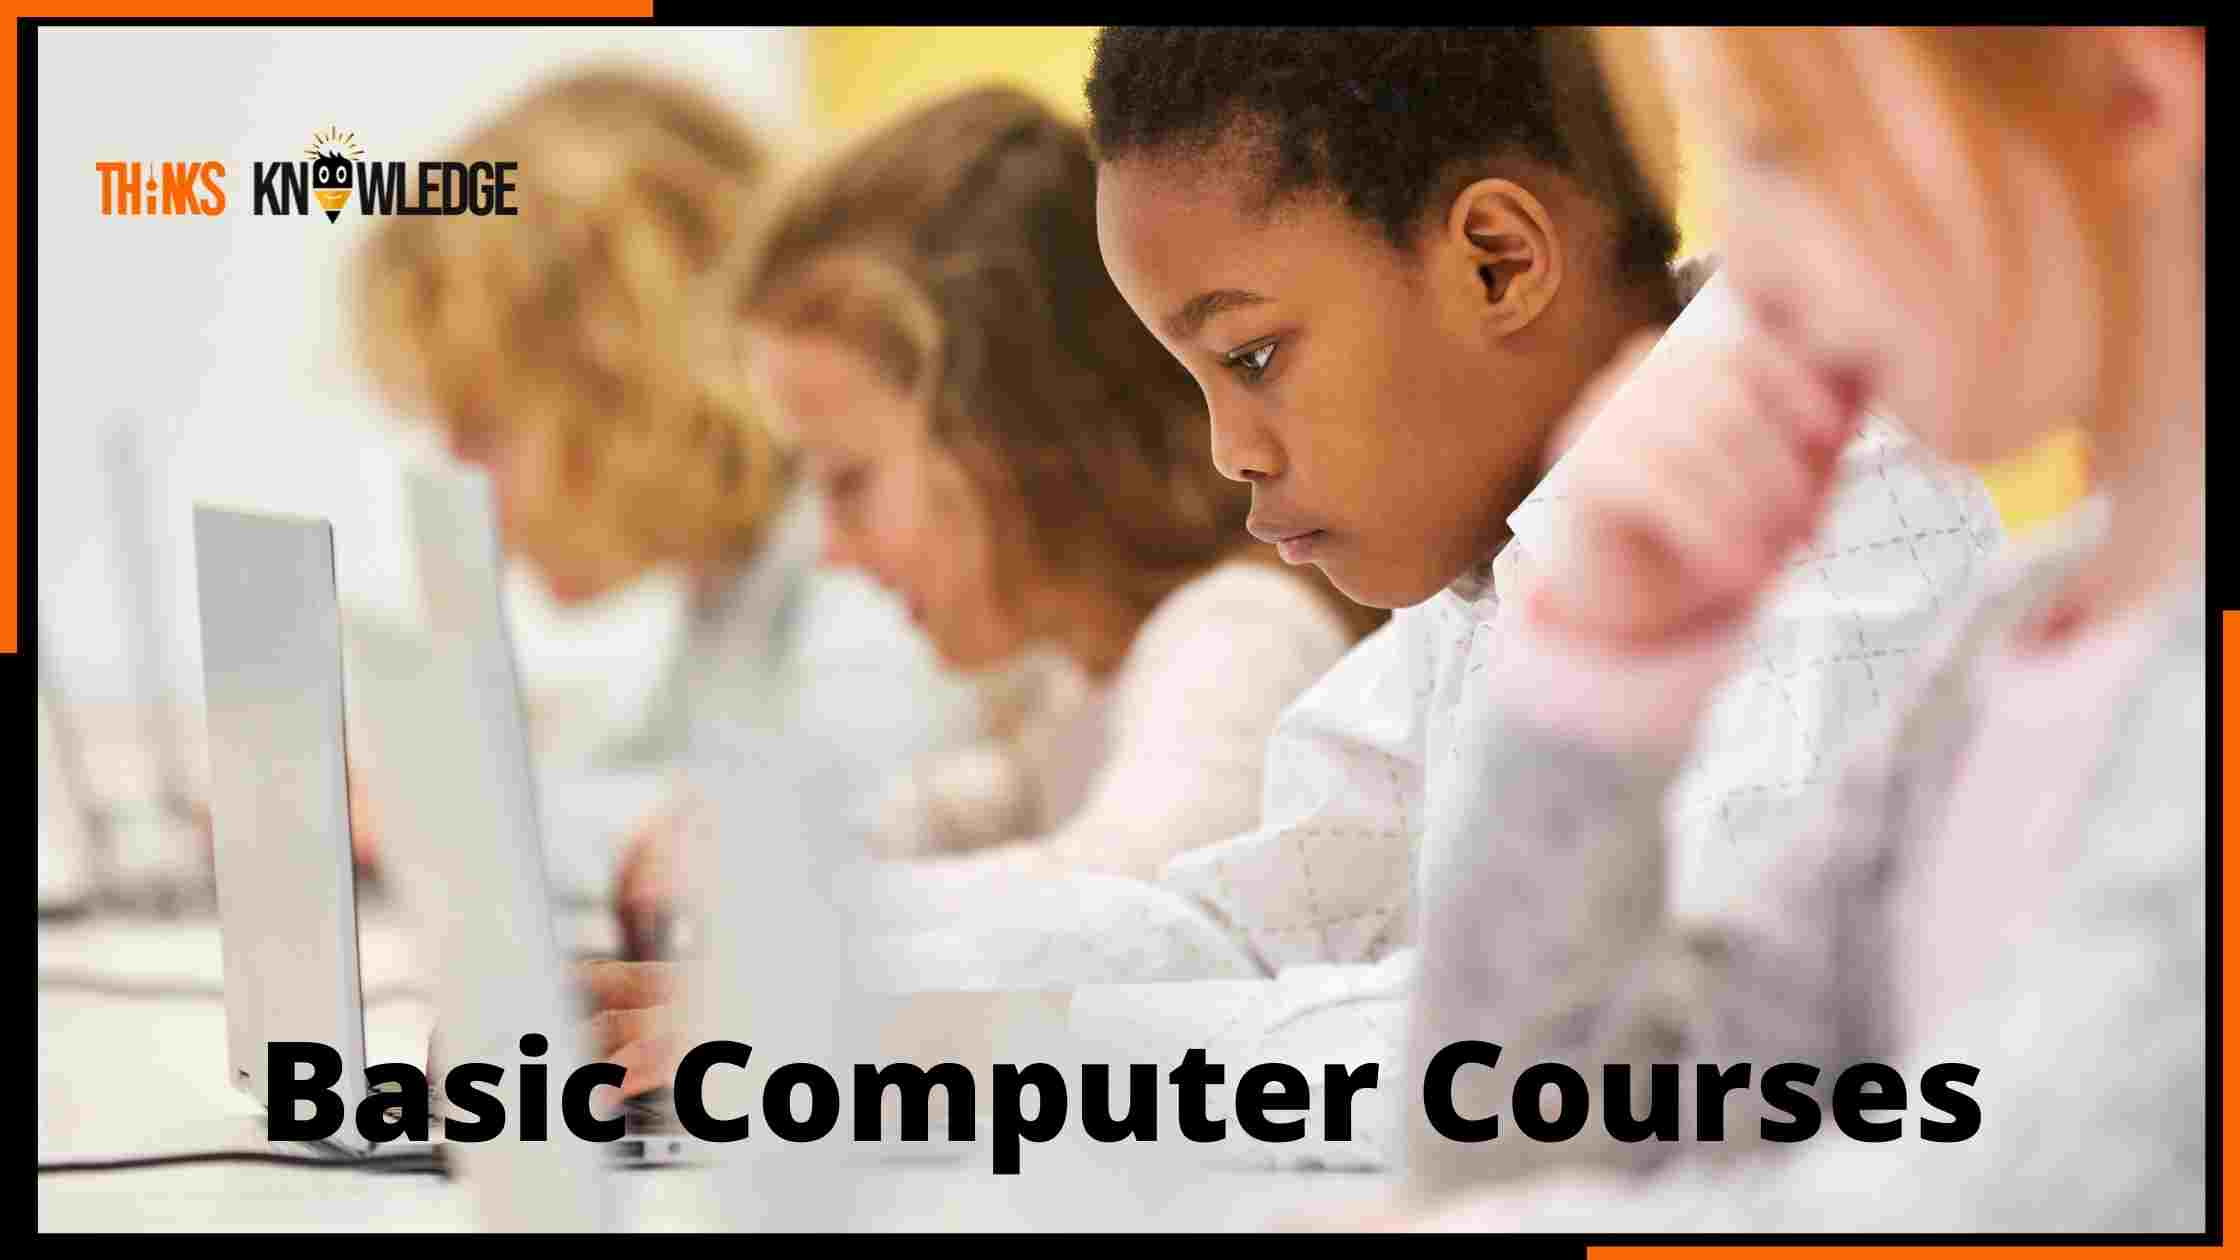 Computer Courses Besic